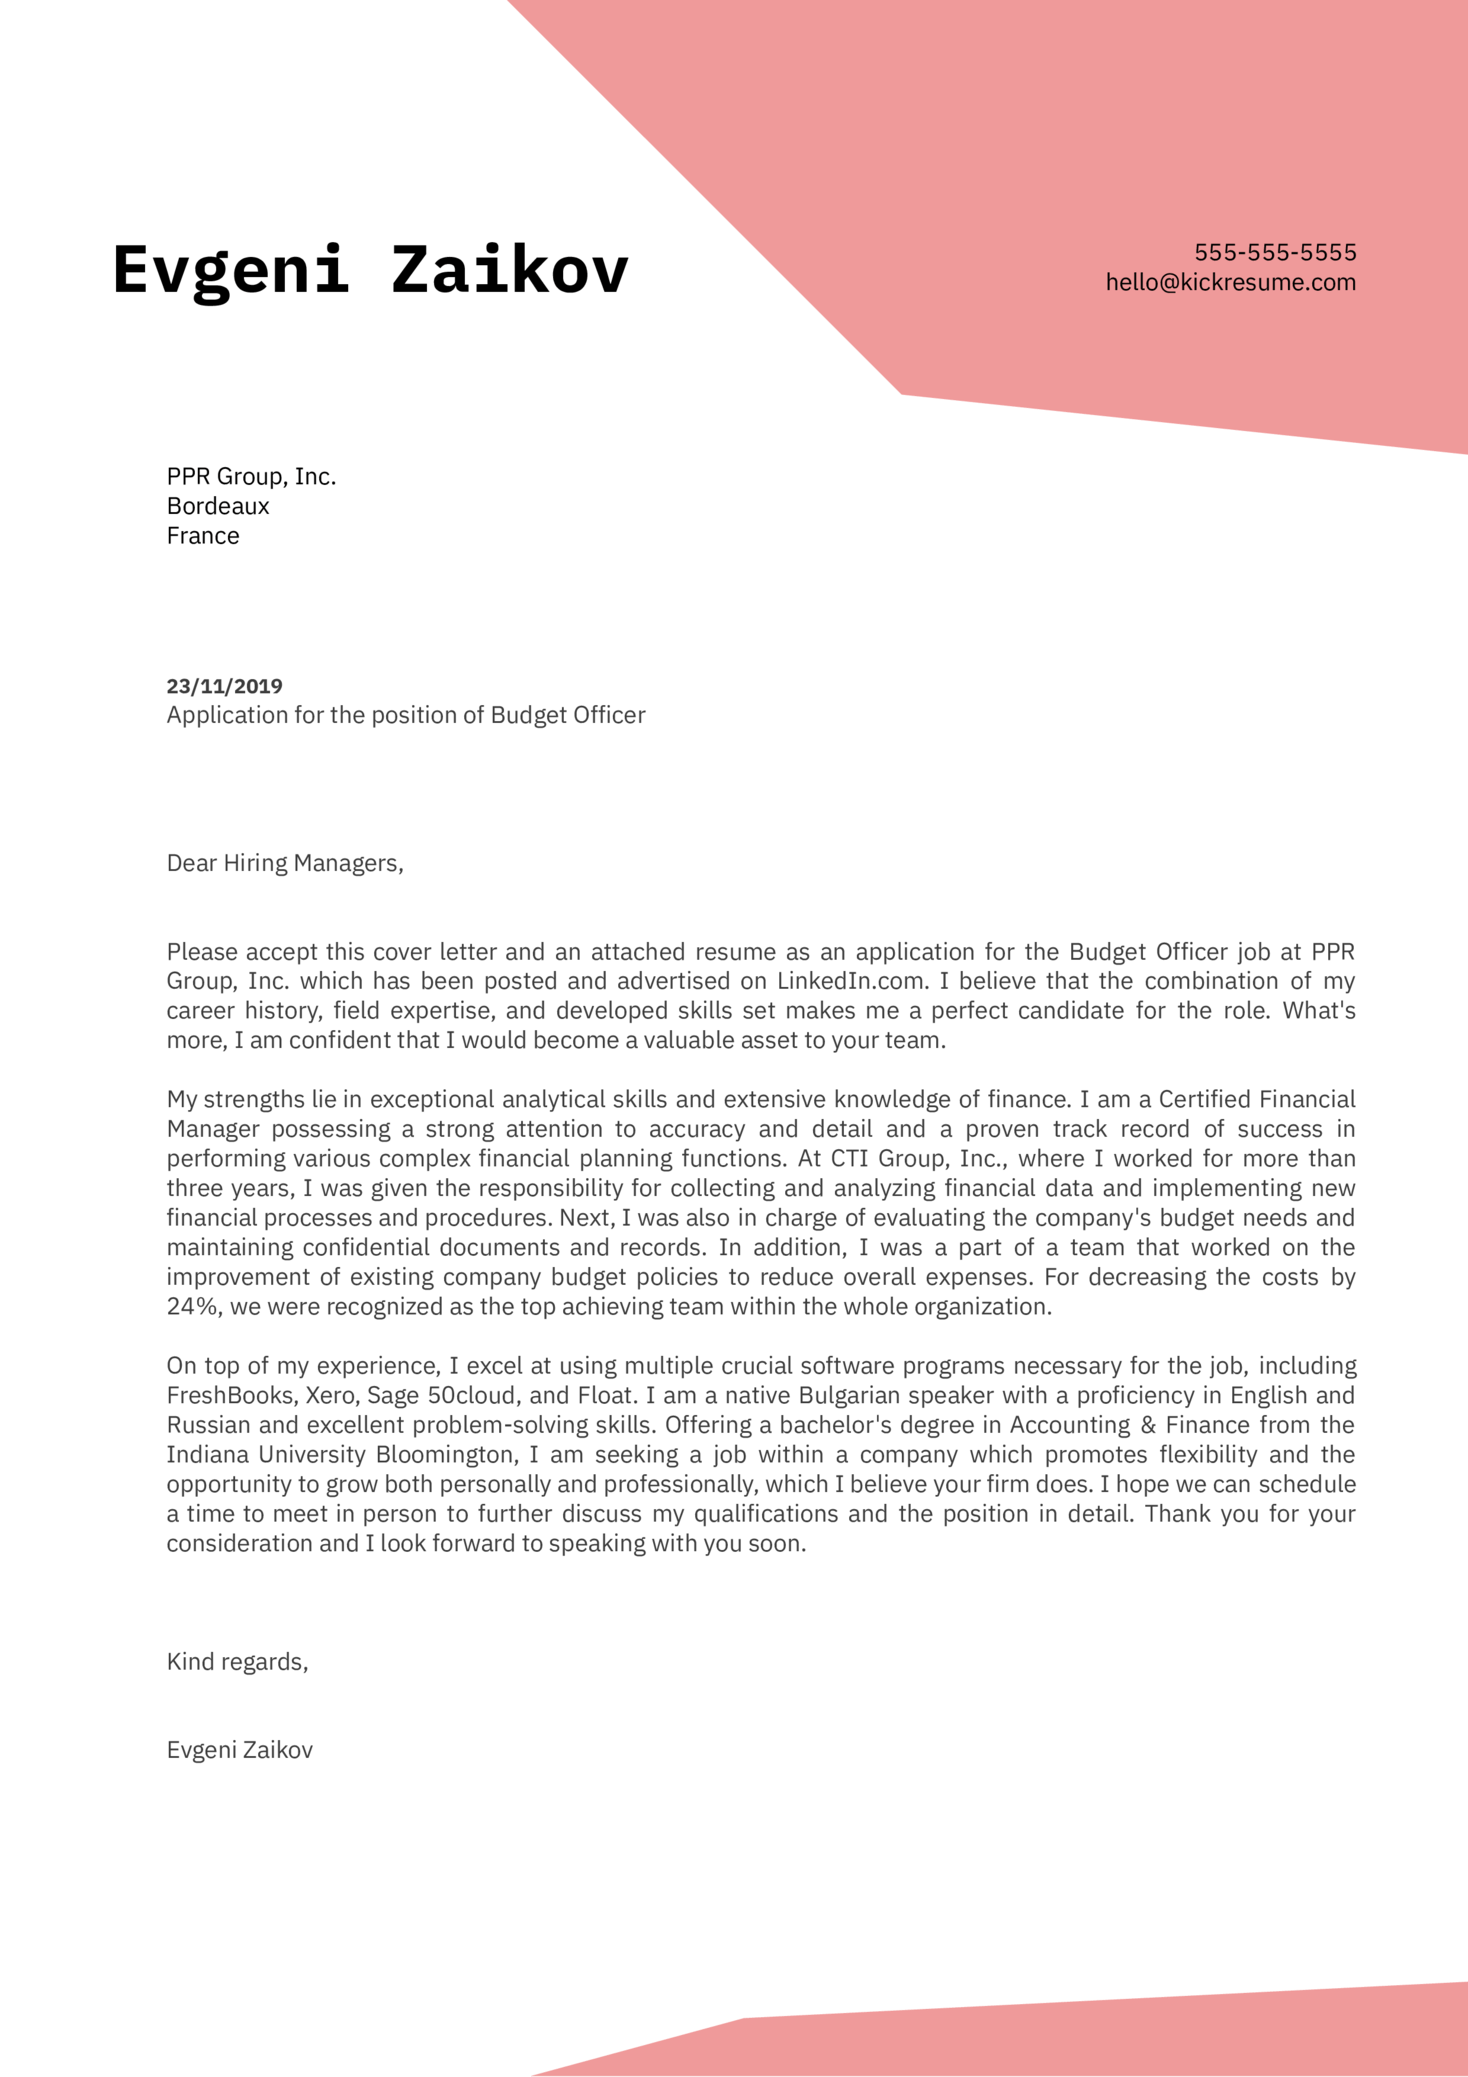 budget officer cover letter example